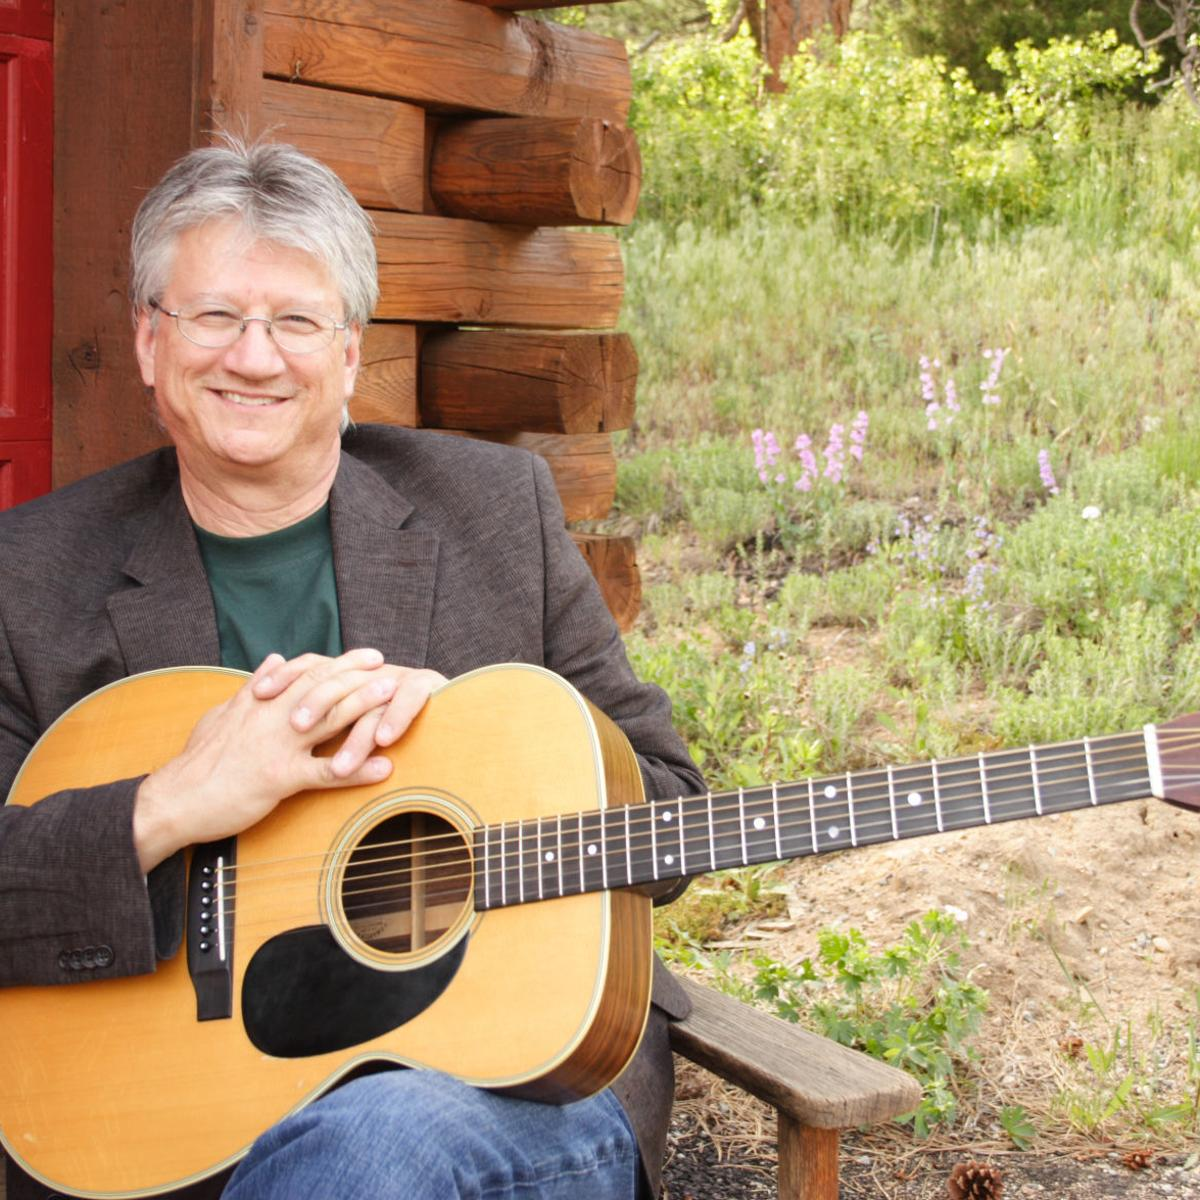 Just a little bit of magic in Richie Furay's music | Entertainment